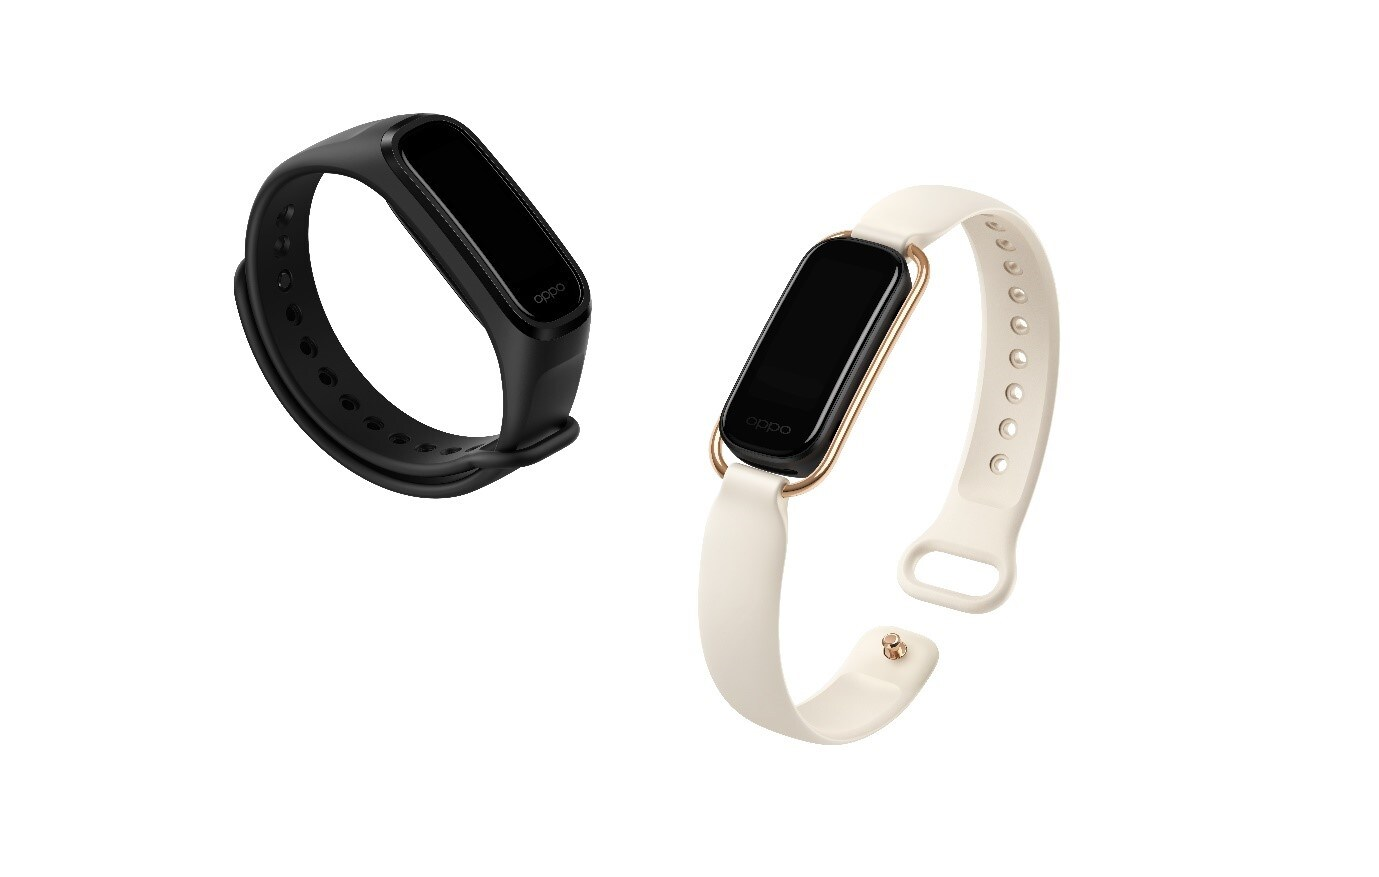 The Best Of Health And Fitness Come Together Perfectly With The New OPPO Band- Technology News, FP